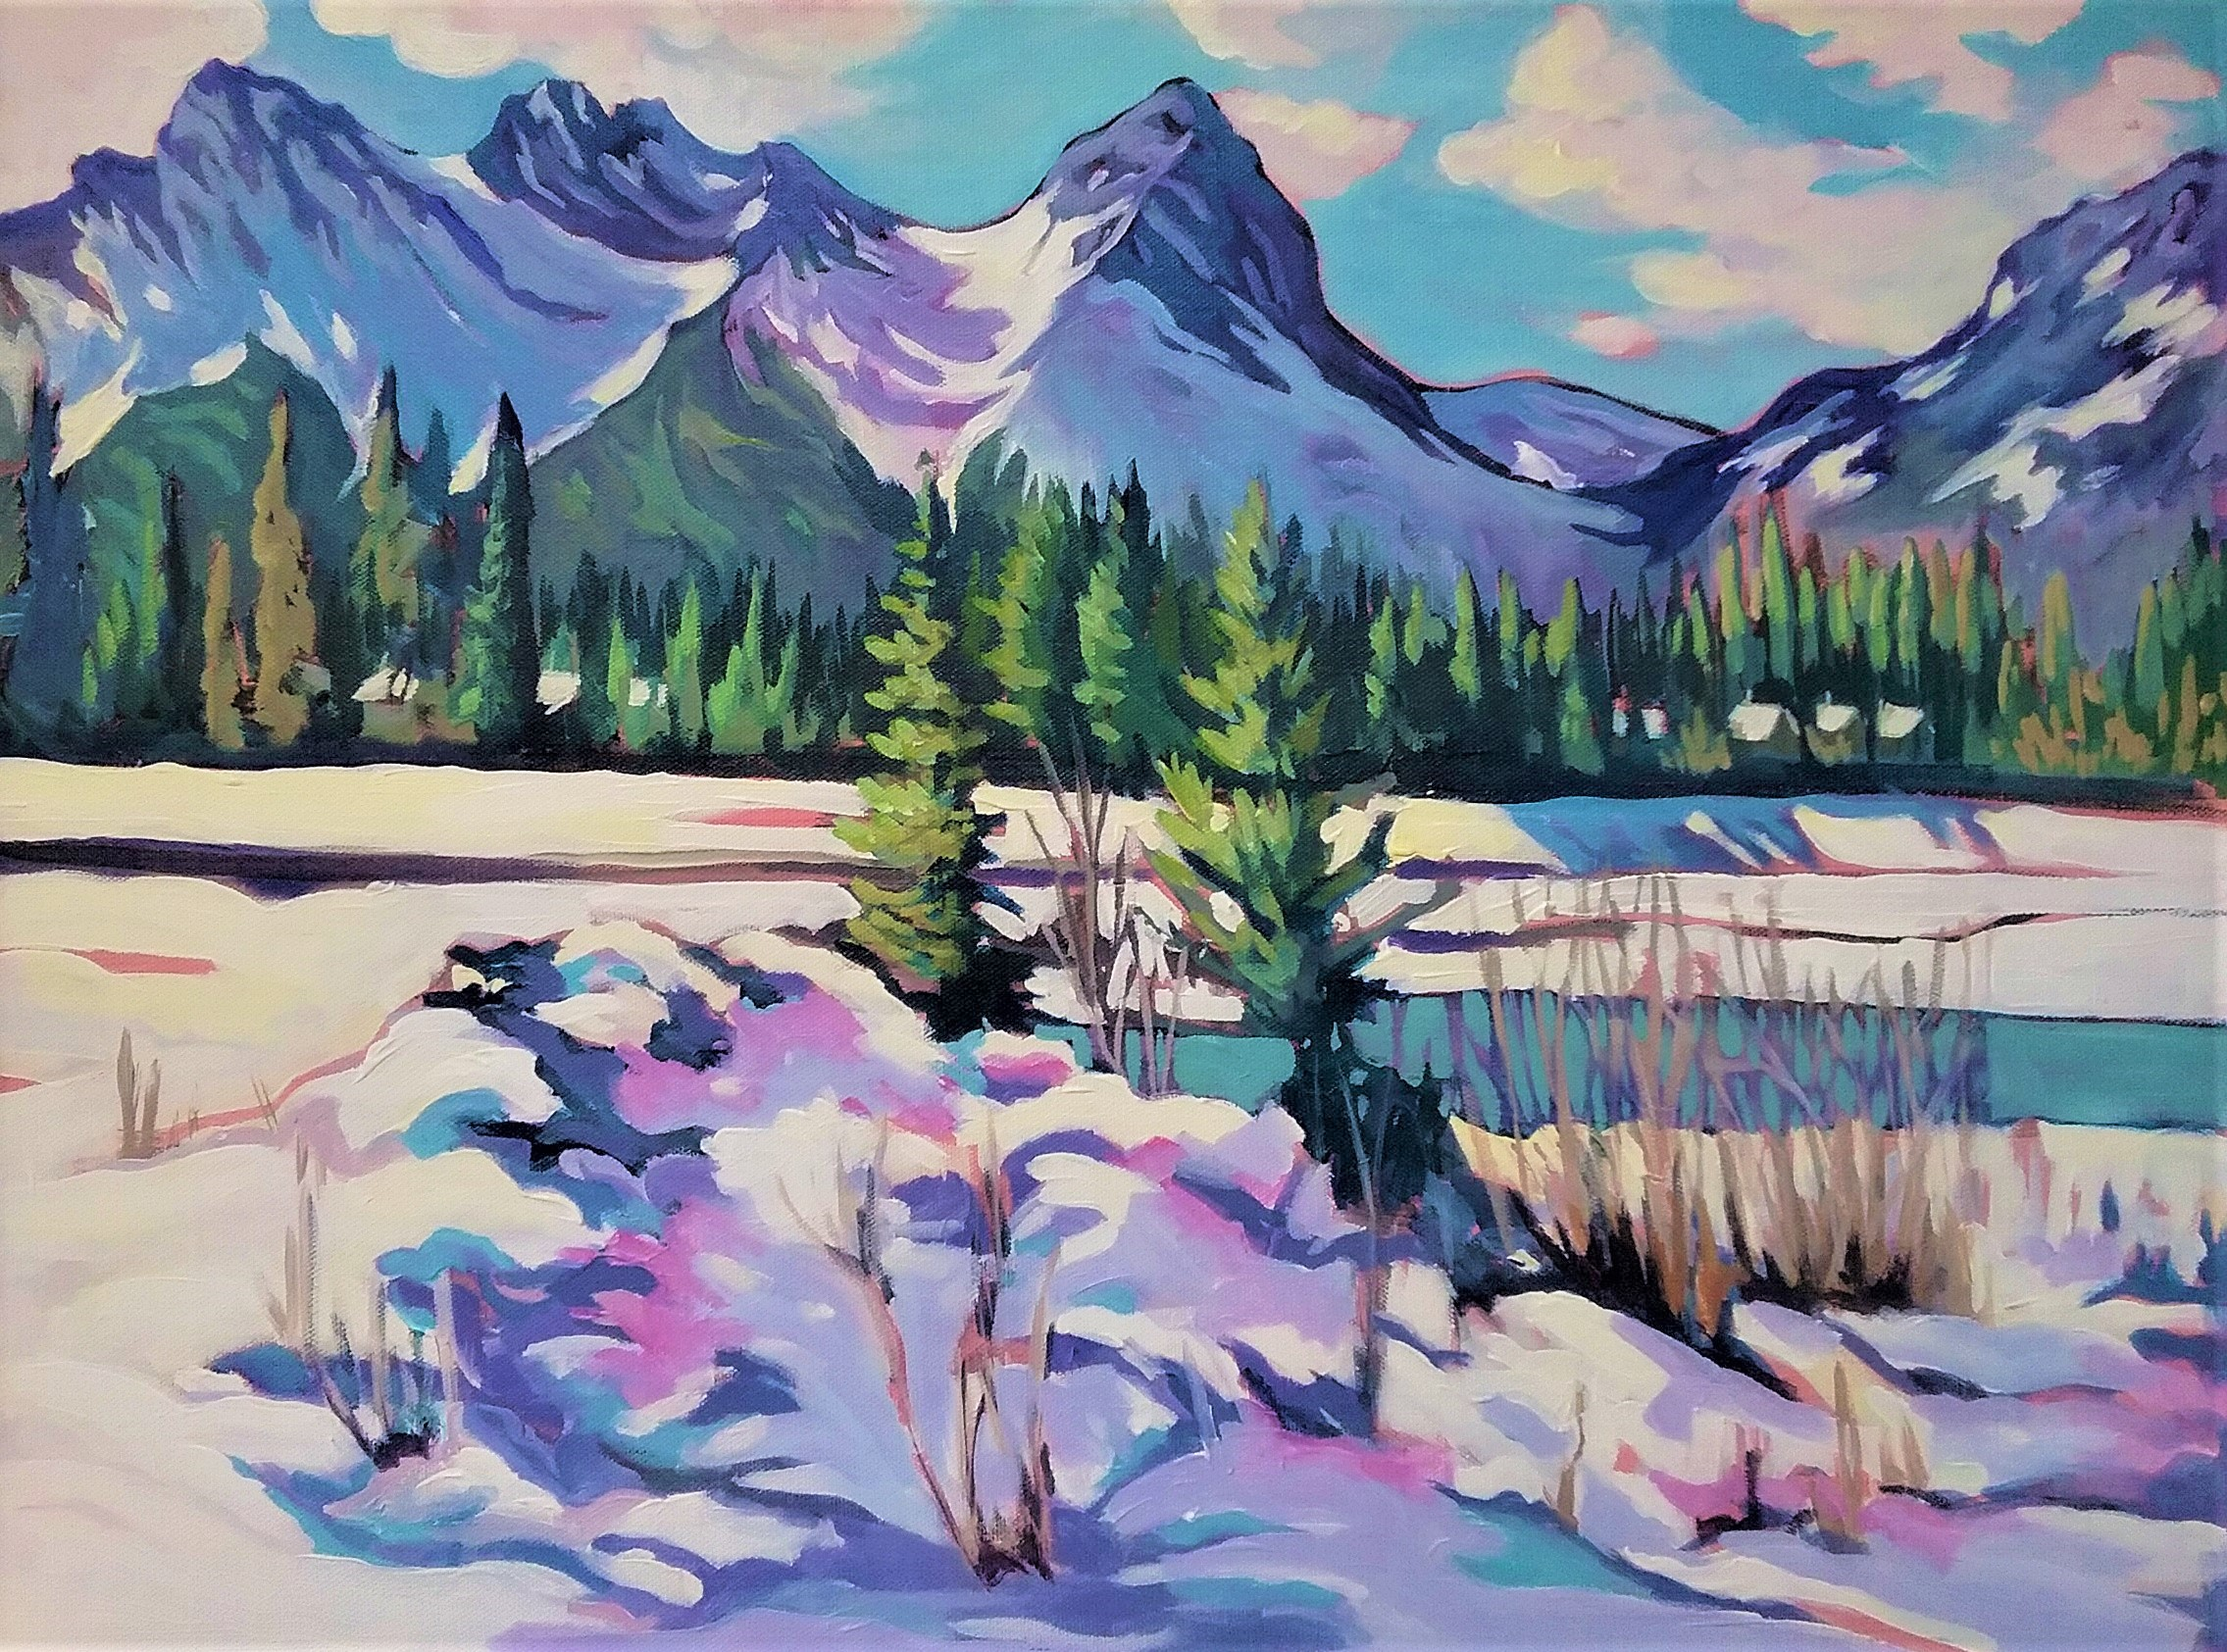 Canmore Majestic 16x20 $600